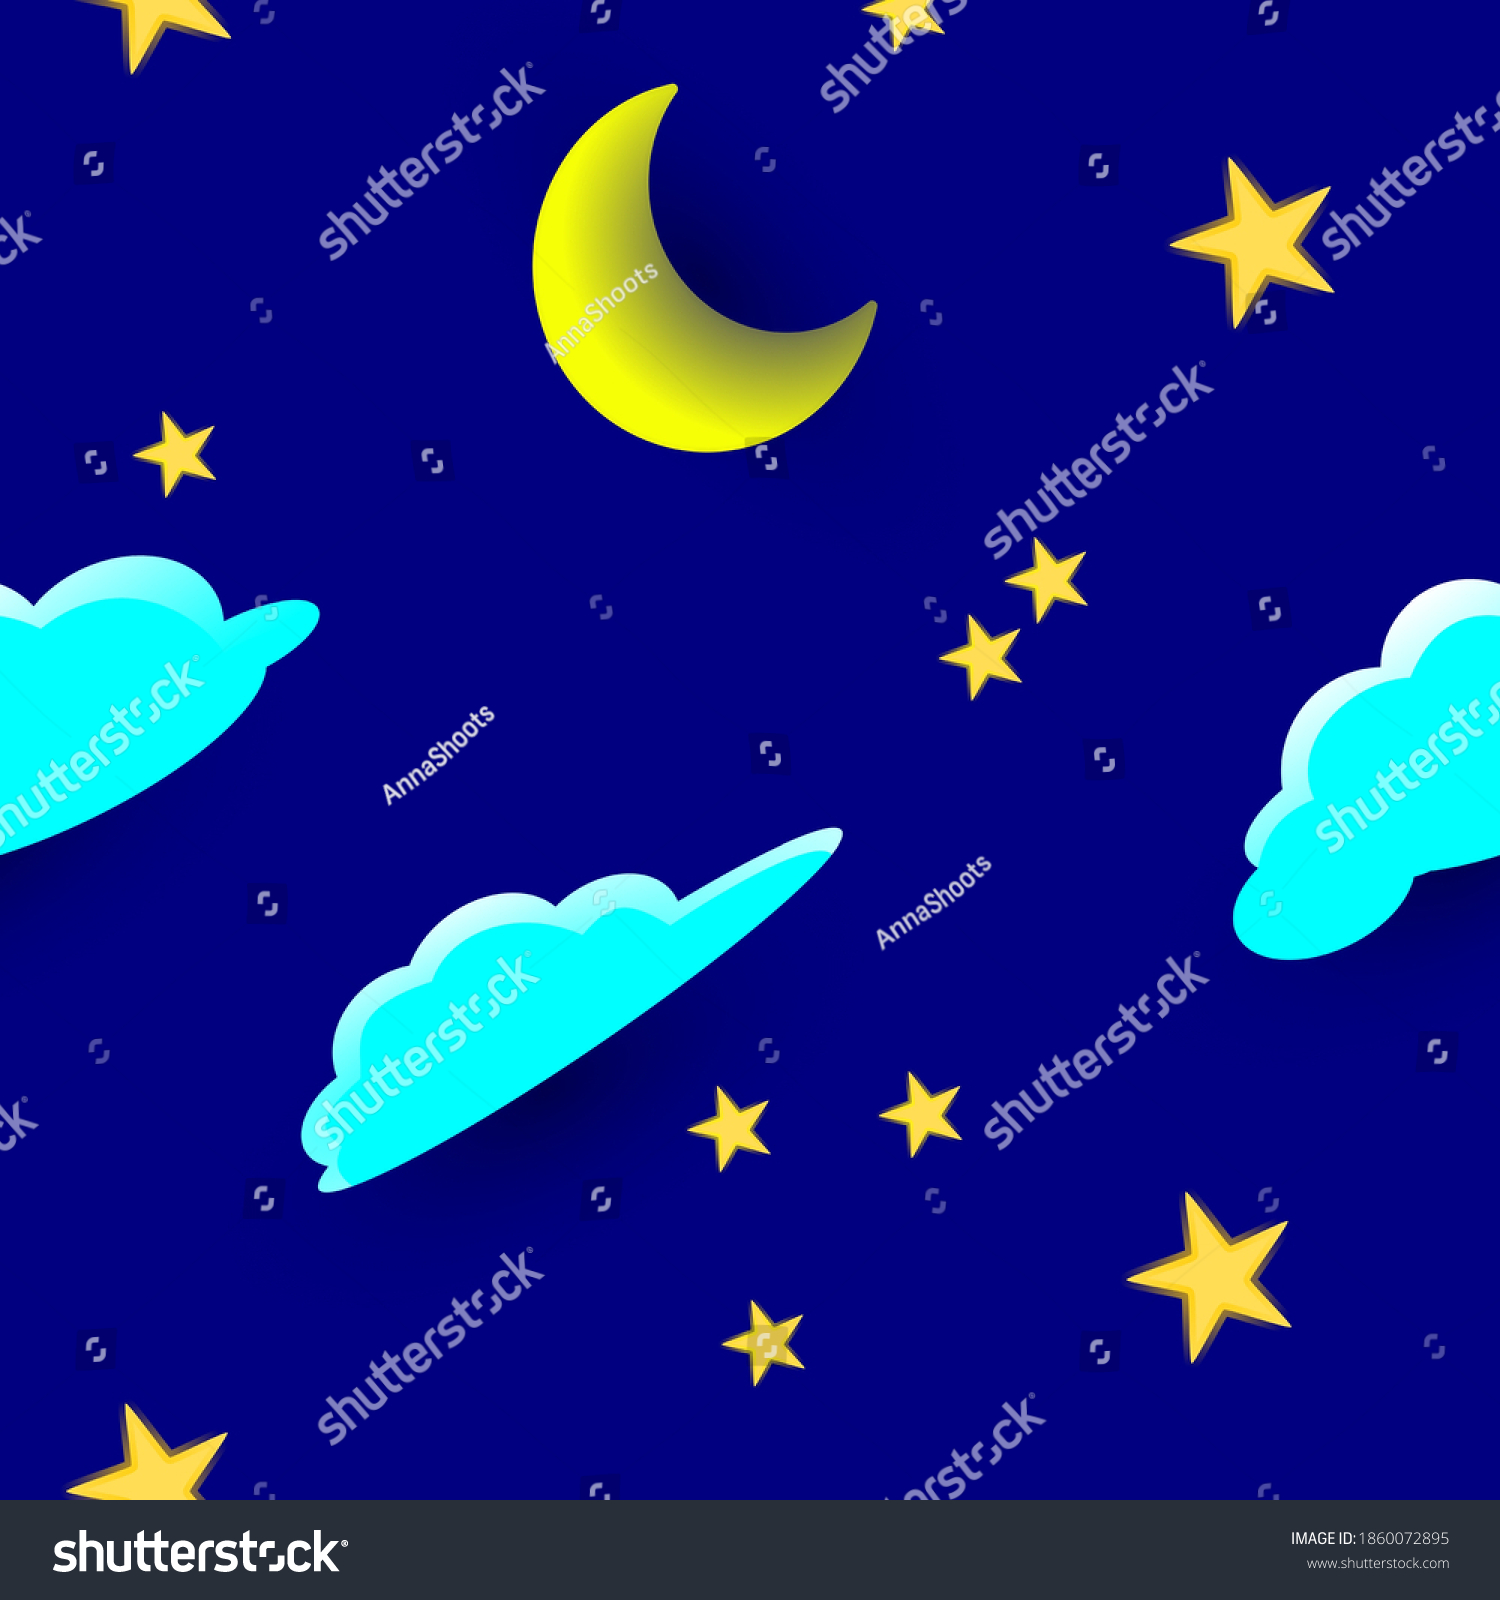 stock-vector-seamless-pattern-with-night